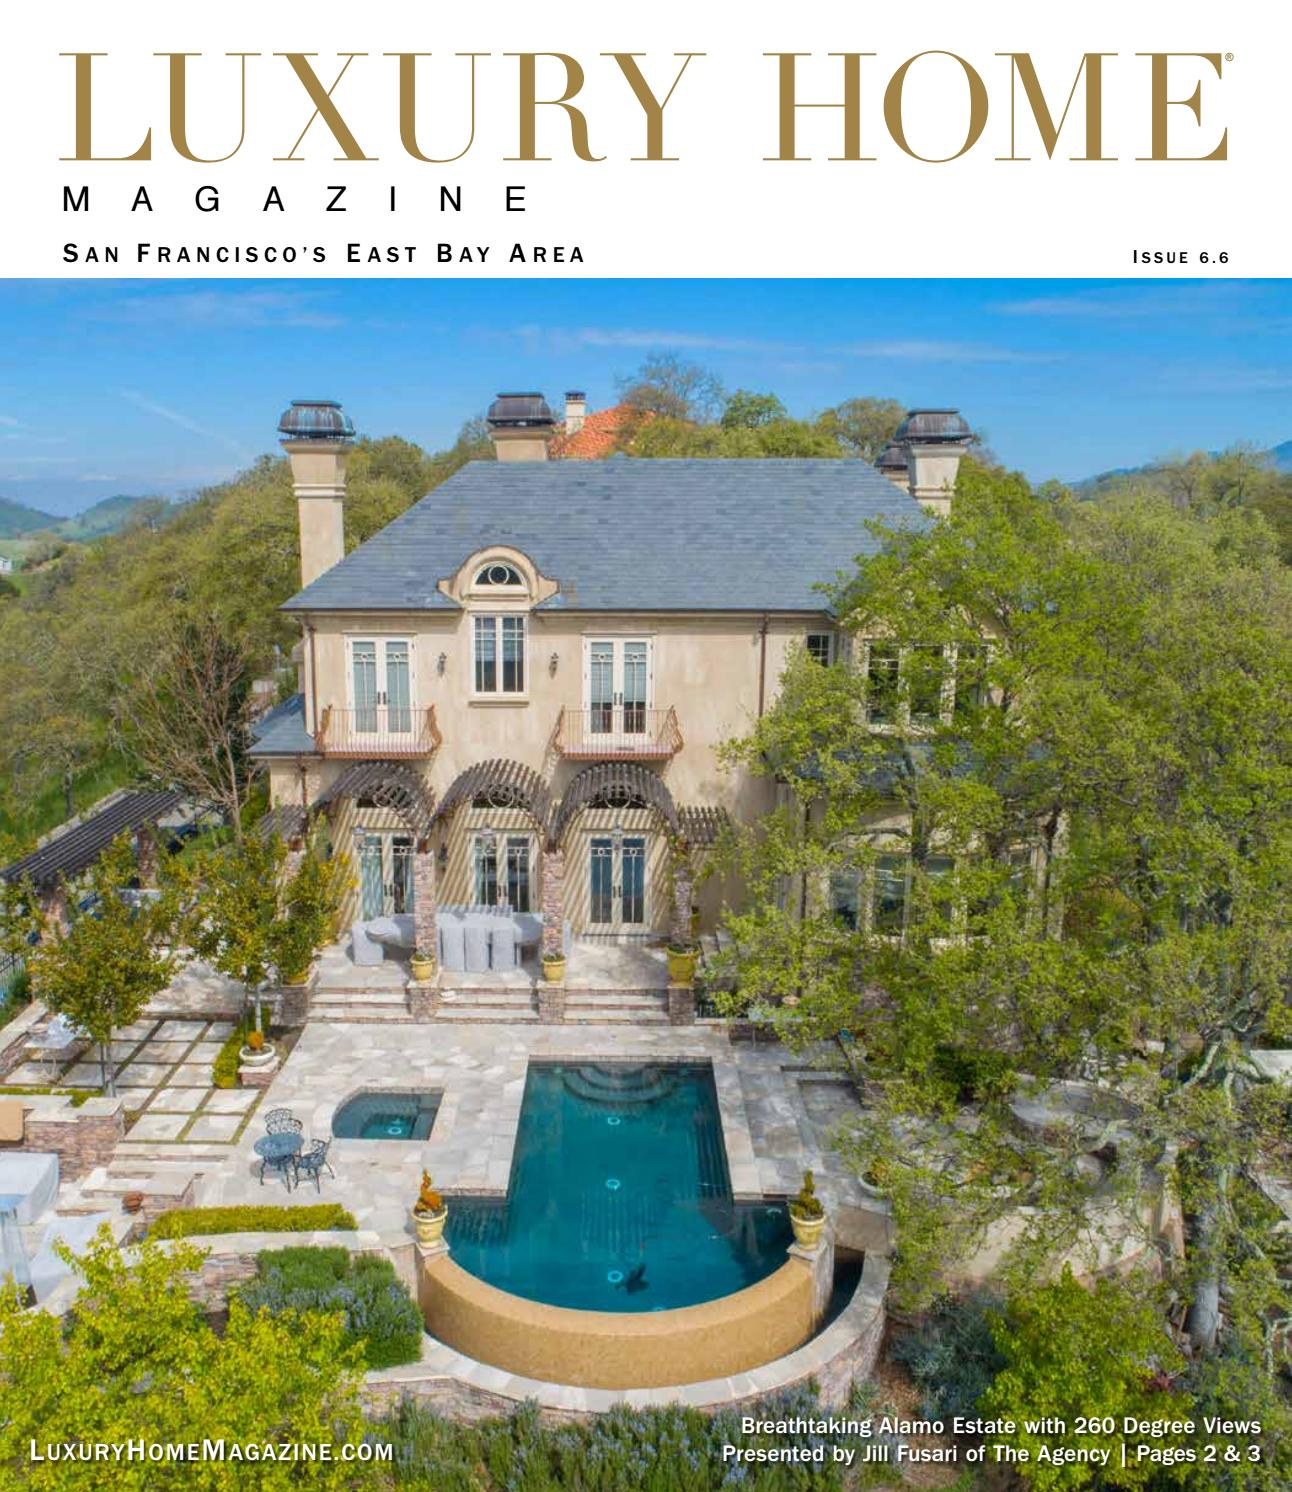 Home Staging Metz luxury home magazine san francisco's east bay area issue 6.6